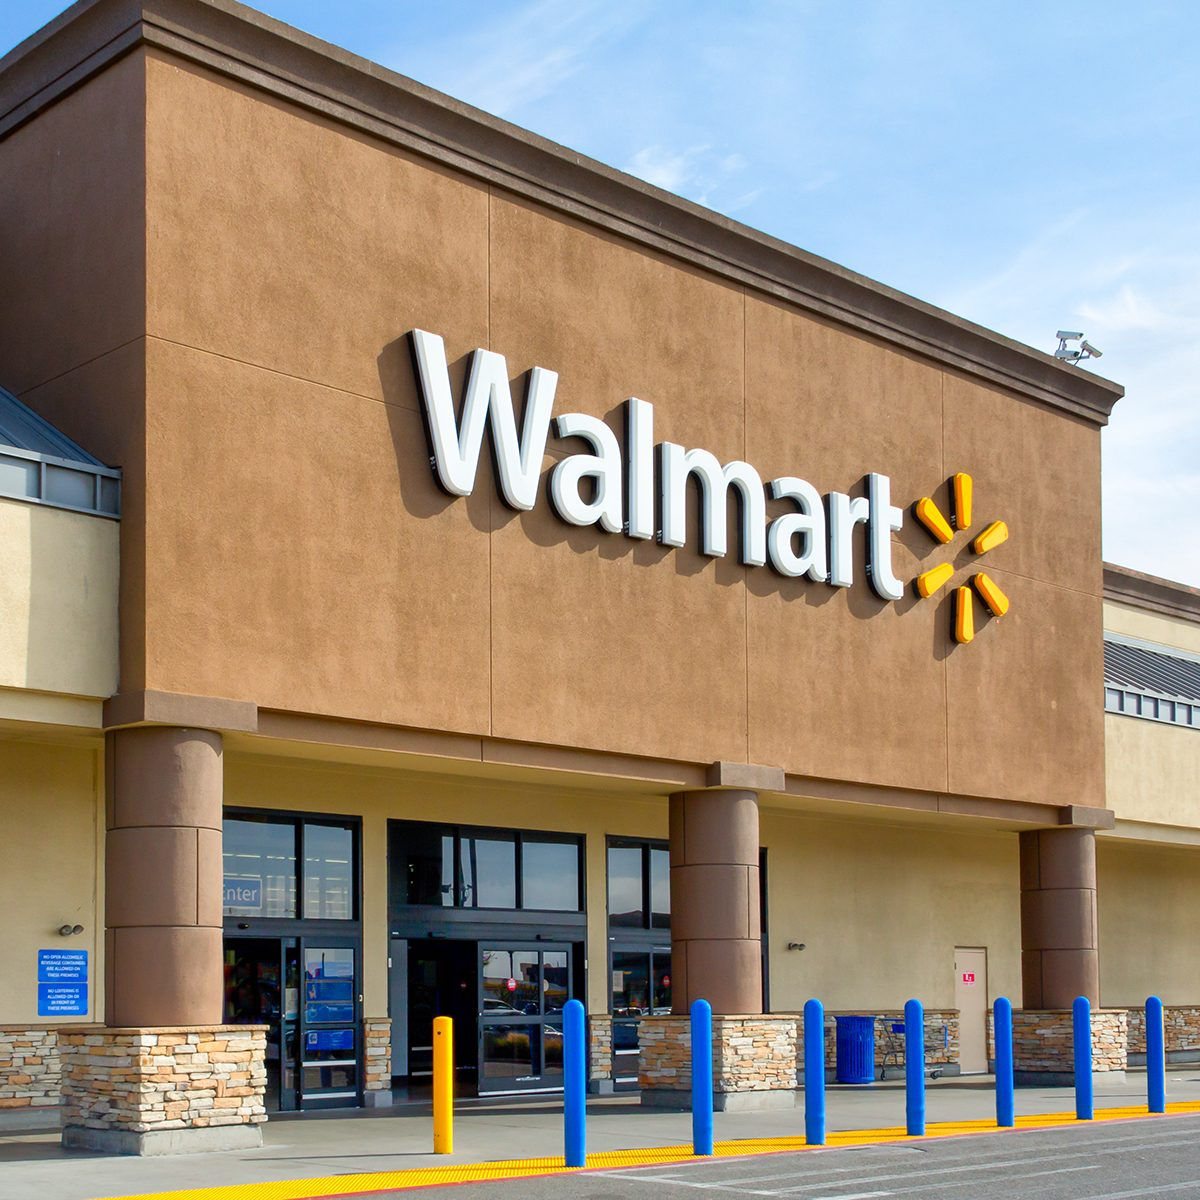 Walmart Grocery Delivery Is Here—and It's Way Cheaper Than Amazon